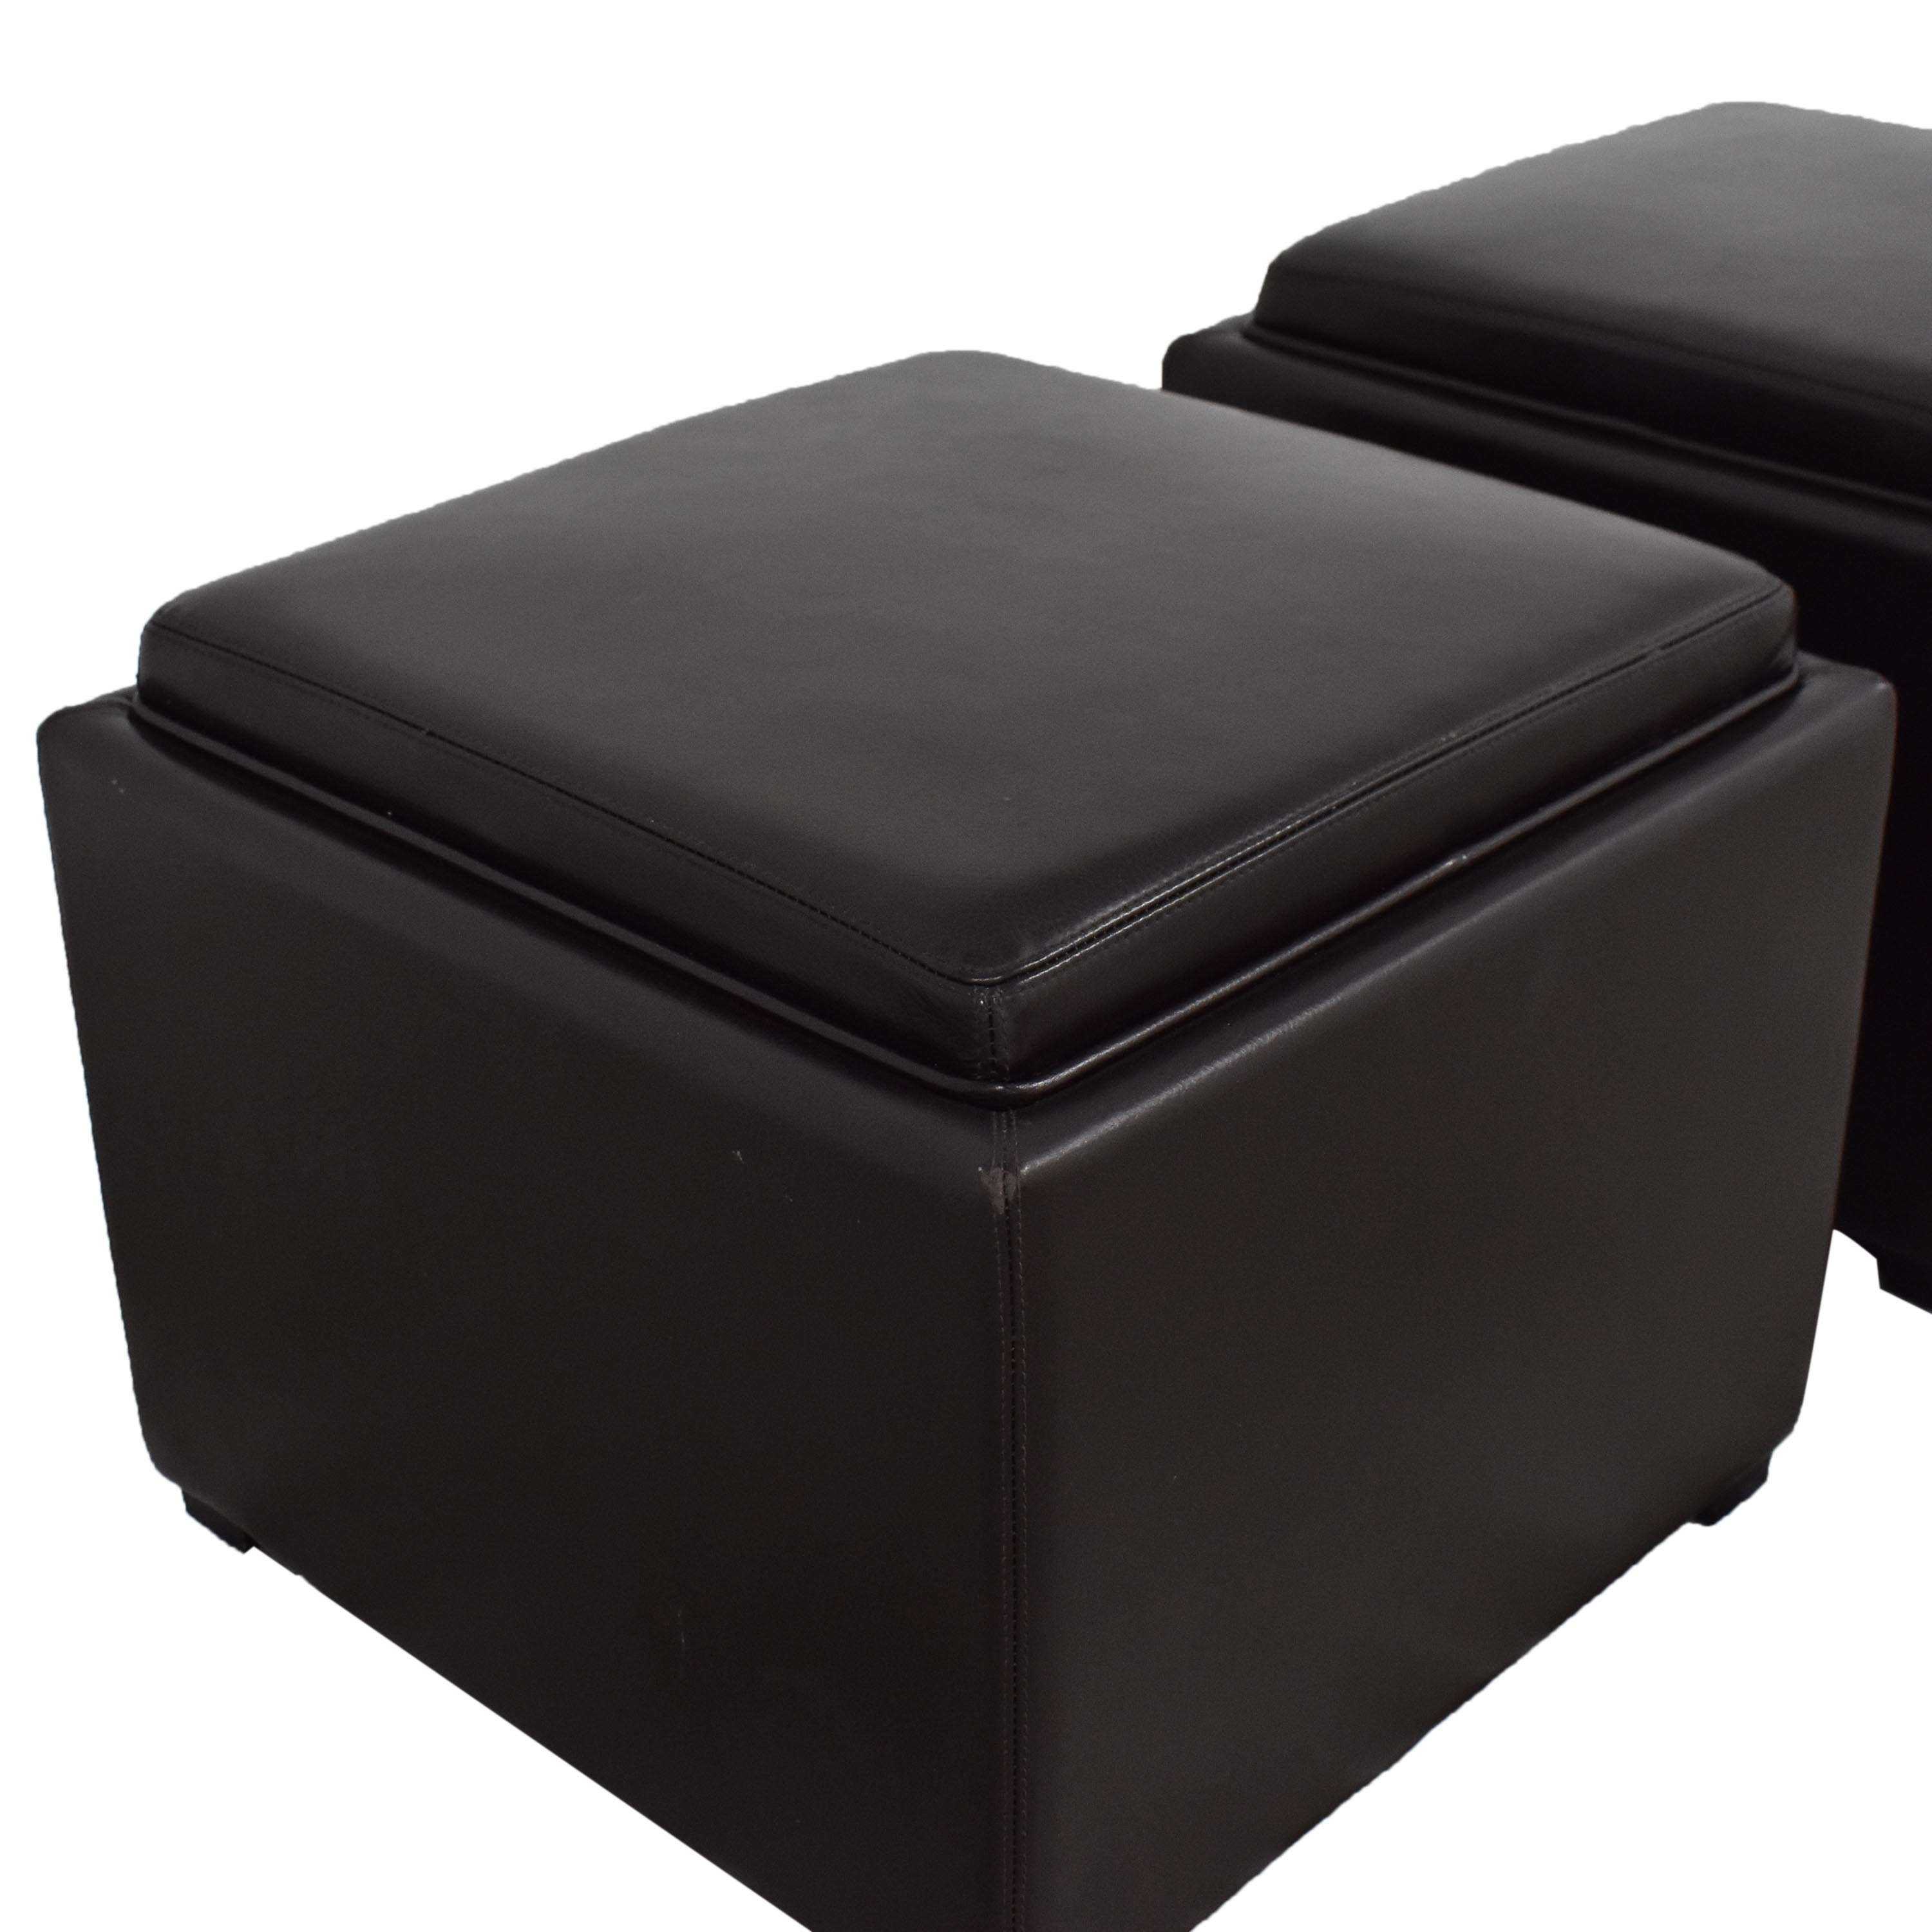 Crate & Barrel Crate & Barrel Stow Ottomans with Storage discount